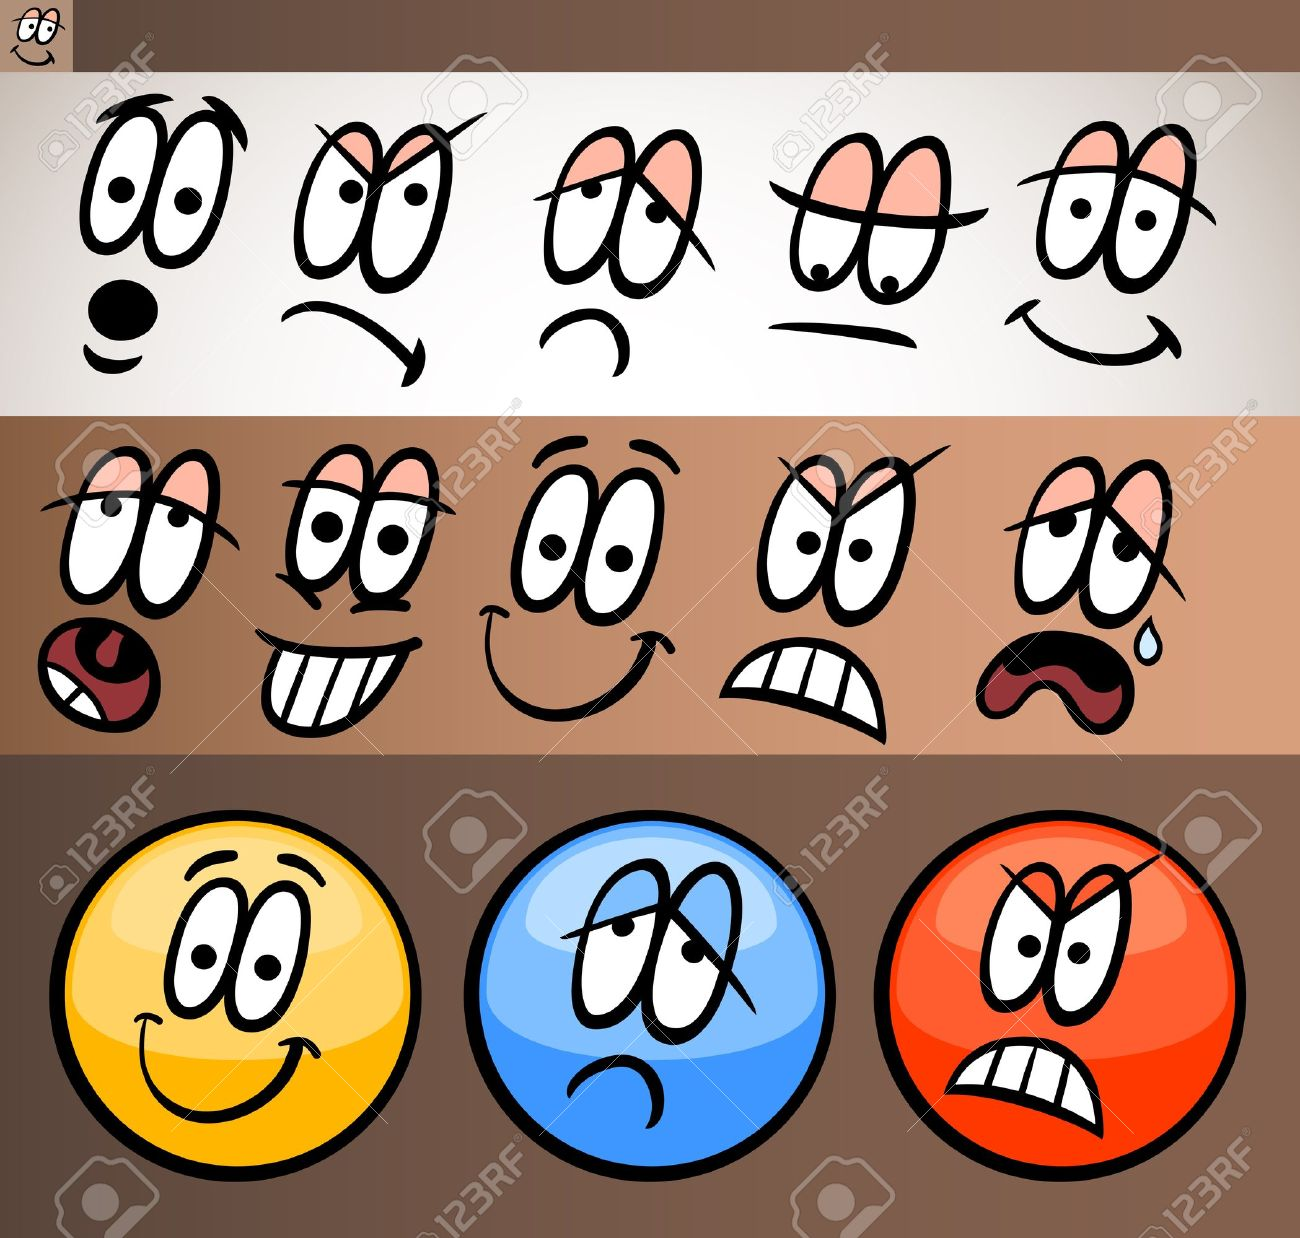 Cartoon Illustration of Funny Emoticon or Emotions and Expressions like Sad, Happy, Angry or Skeptic Stock Vector - 17560130